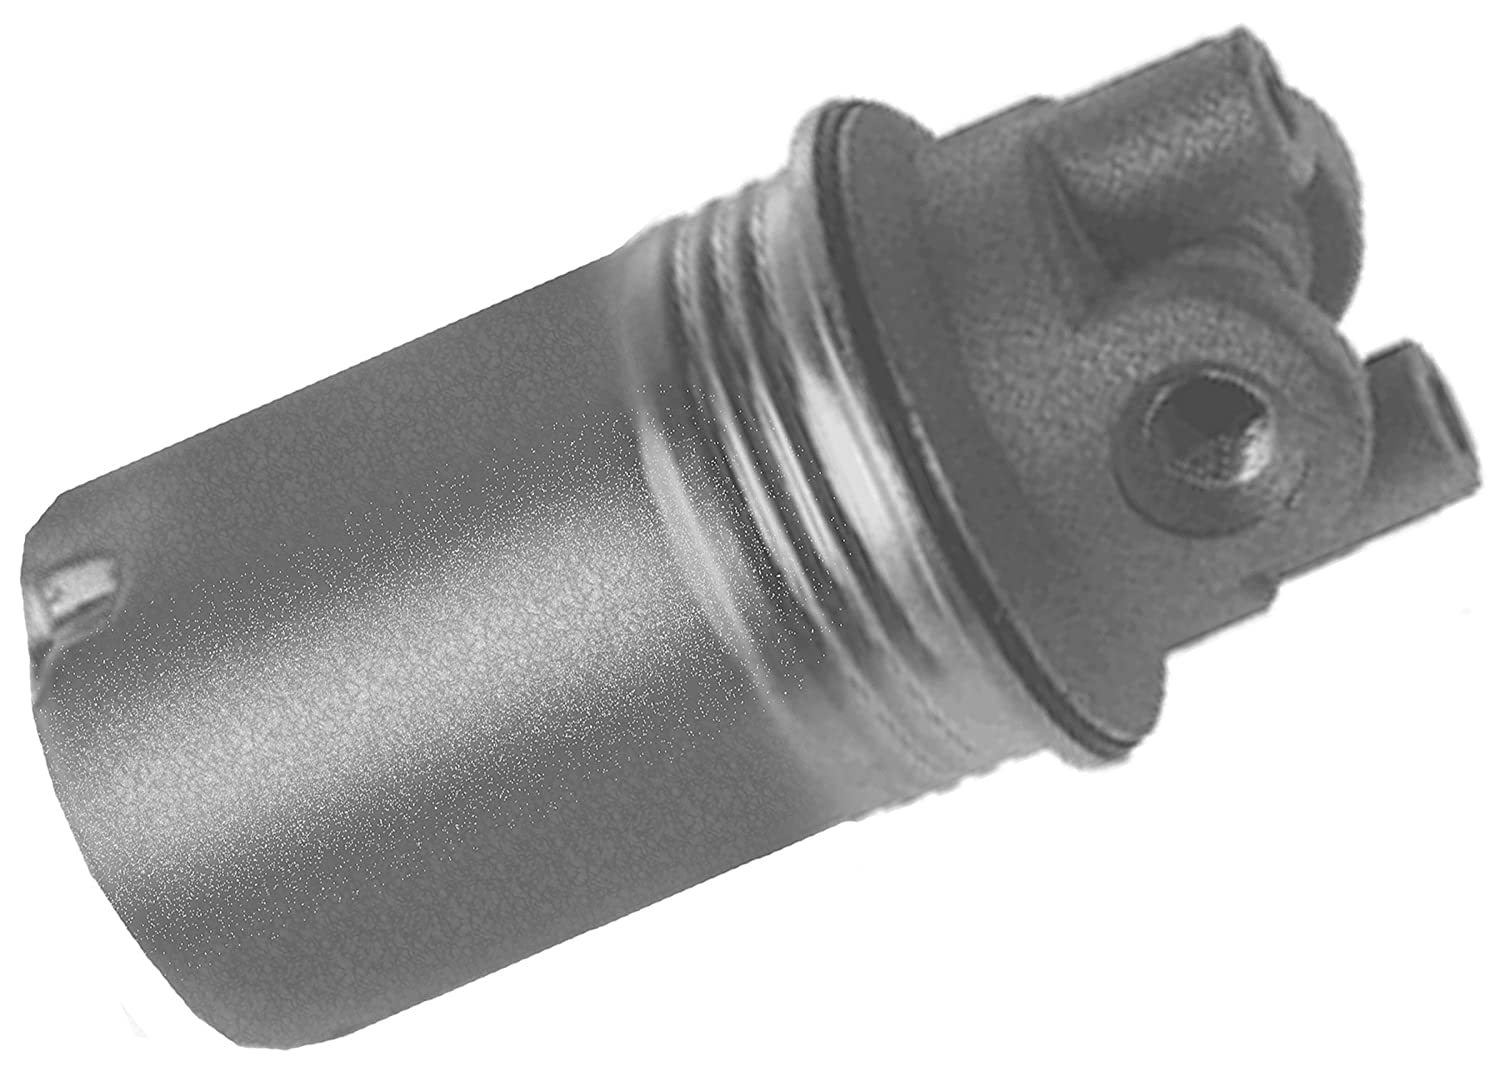 Acdelco Gf62 Professional Fuel Filter Automotive 1987 Toyota Truck